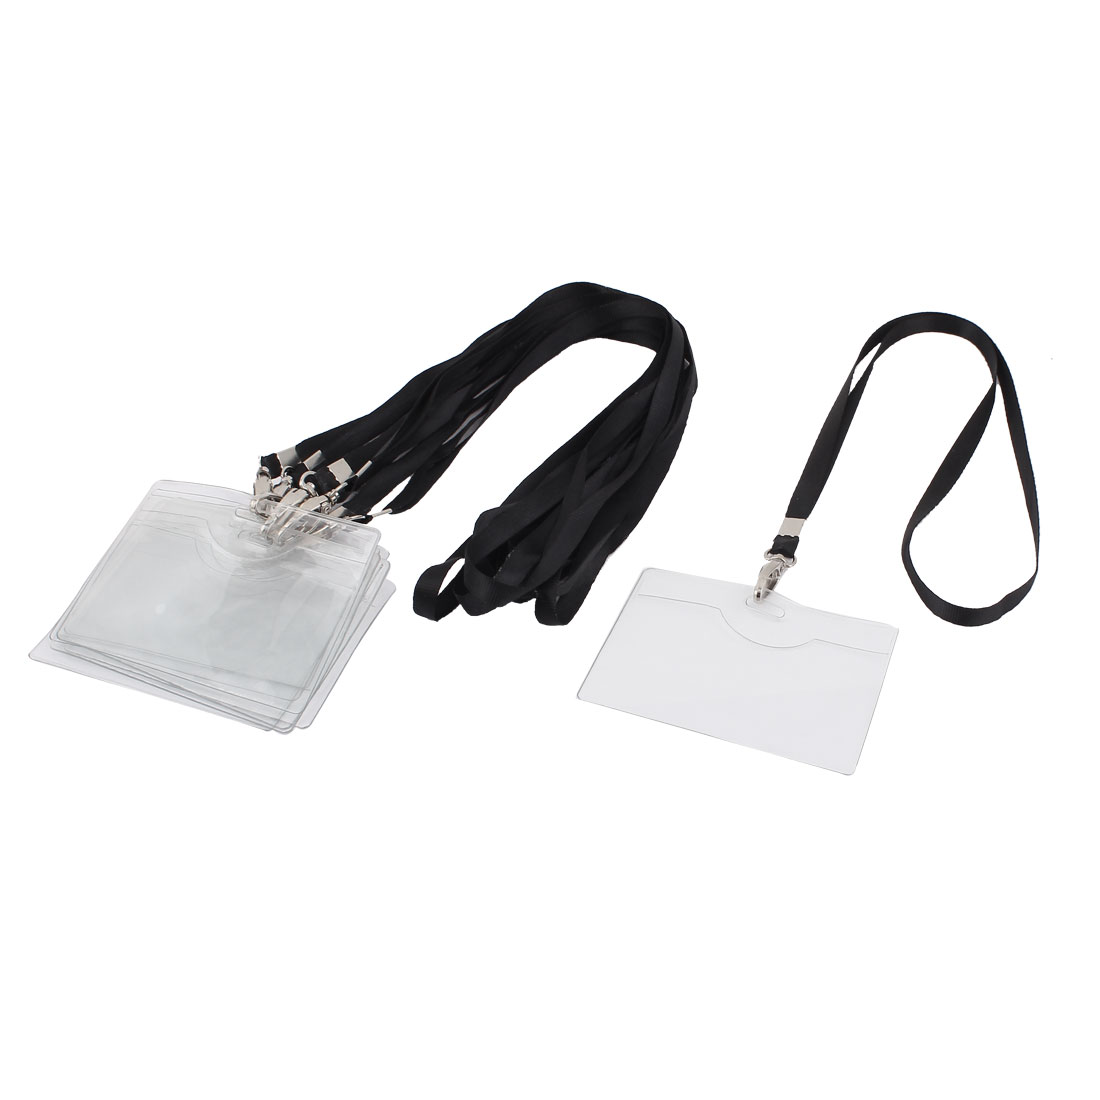 9pcs 10cmx7.5cm Plastic Horizontal Design Work ID Business Name Card Tag Badge Holder Carrier Neck Strap